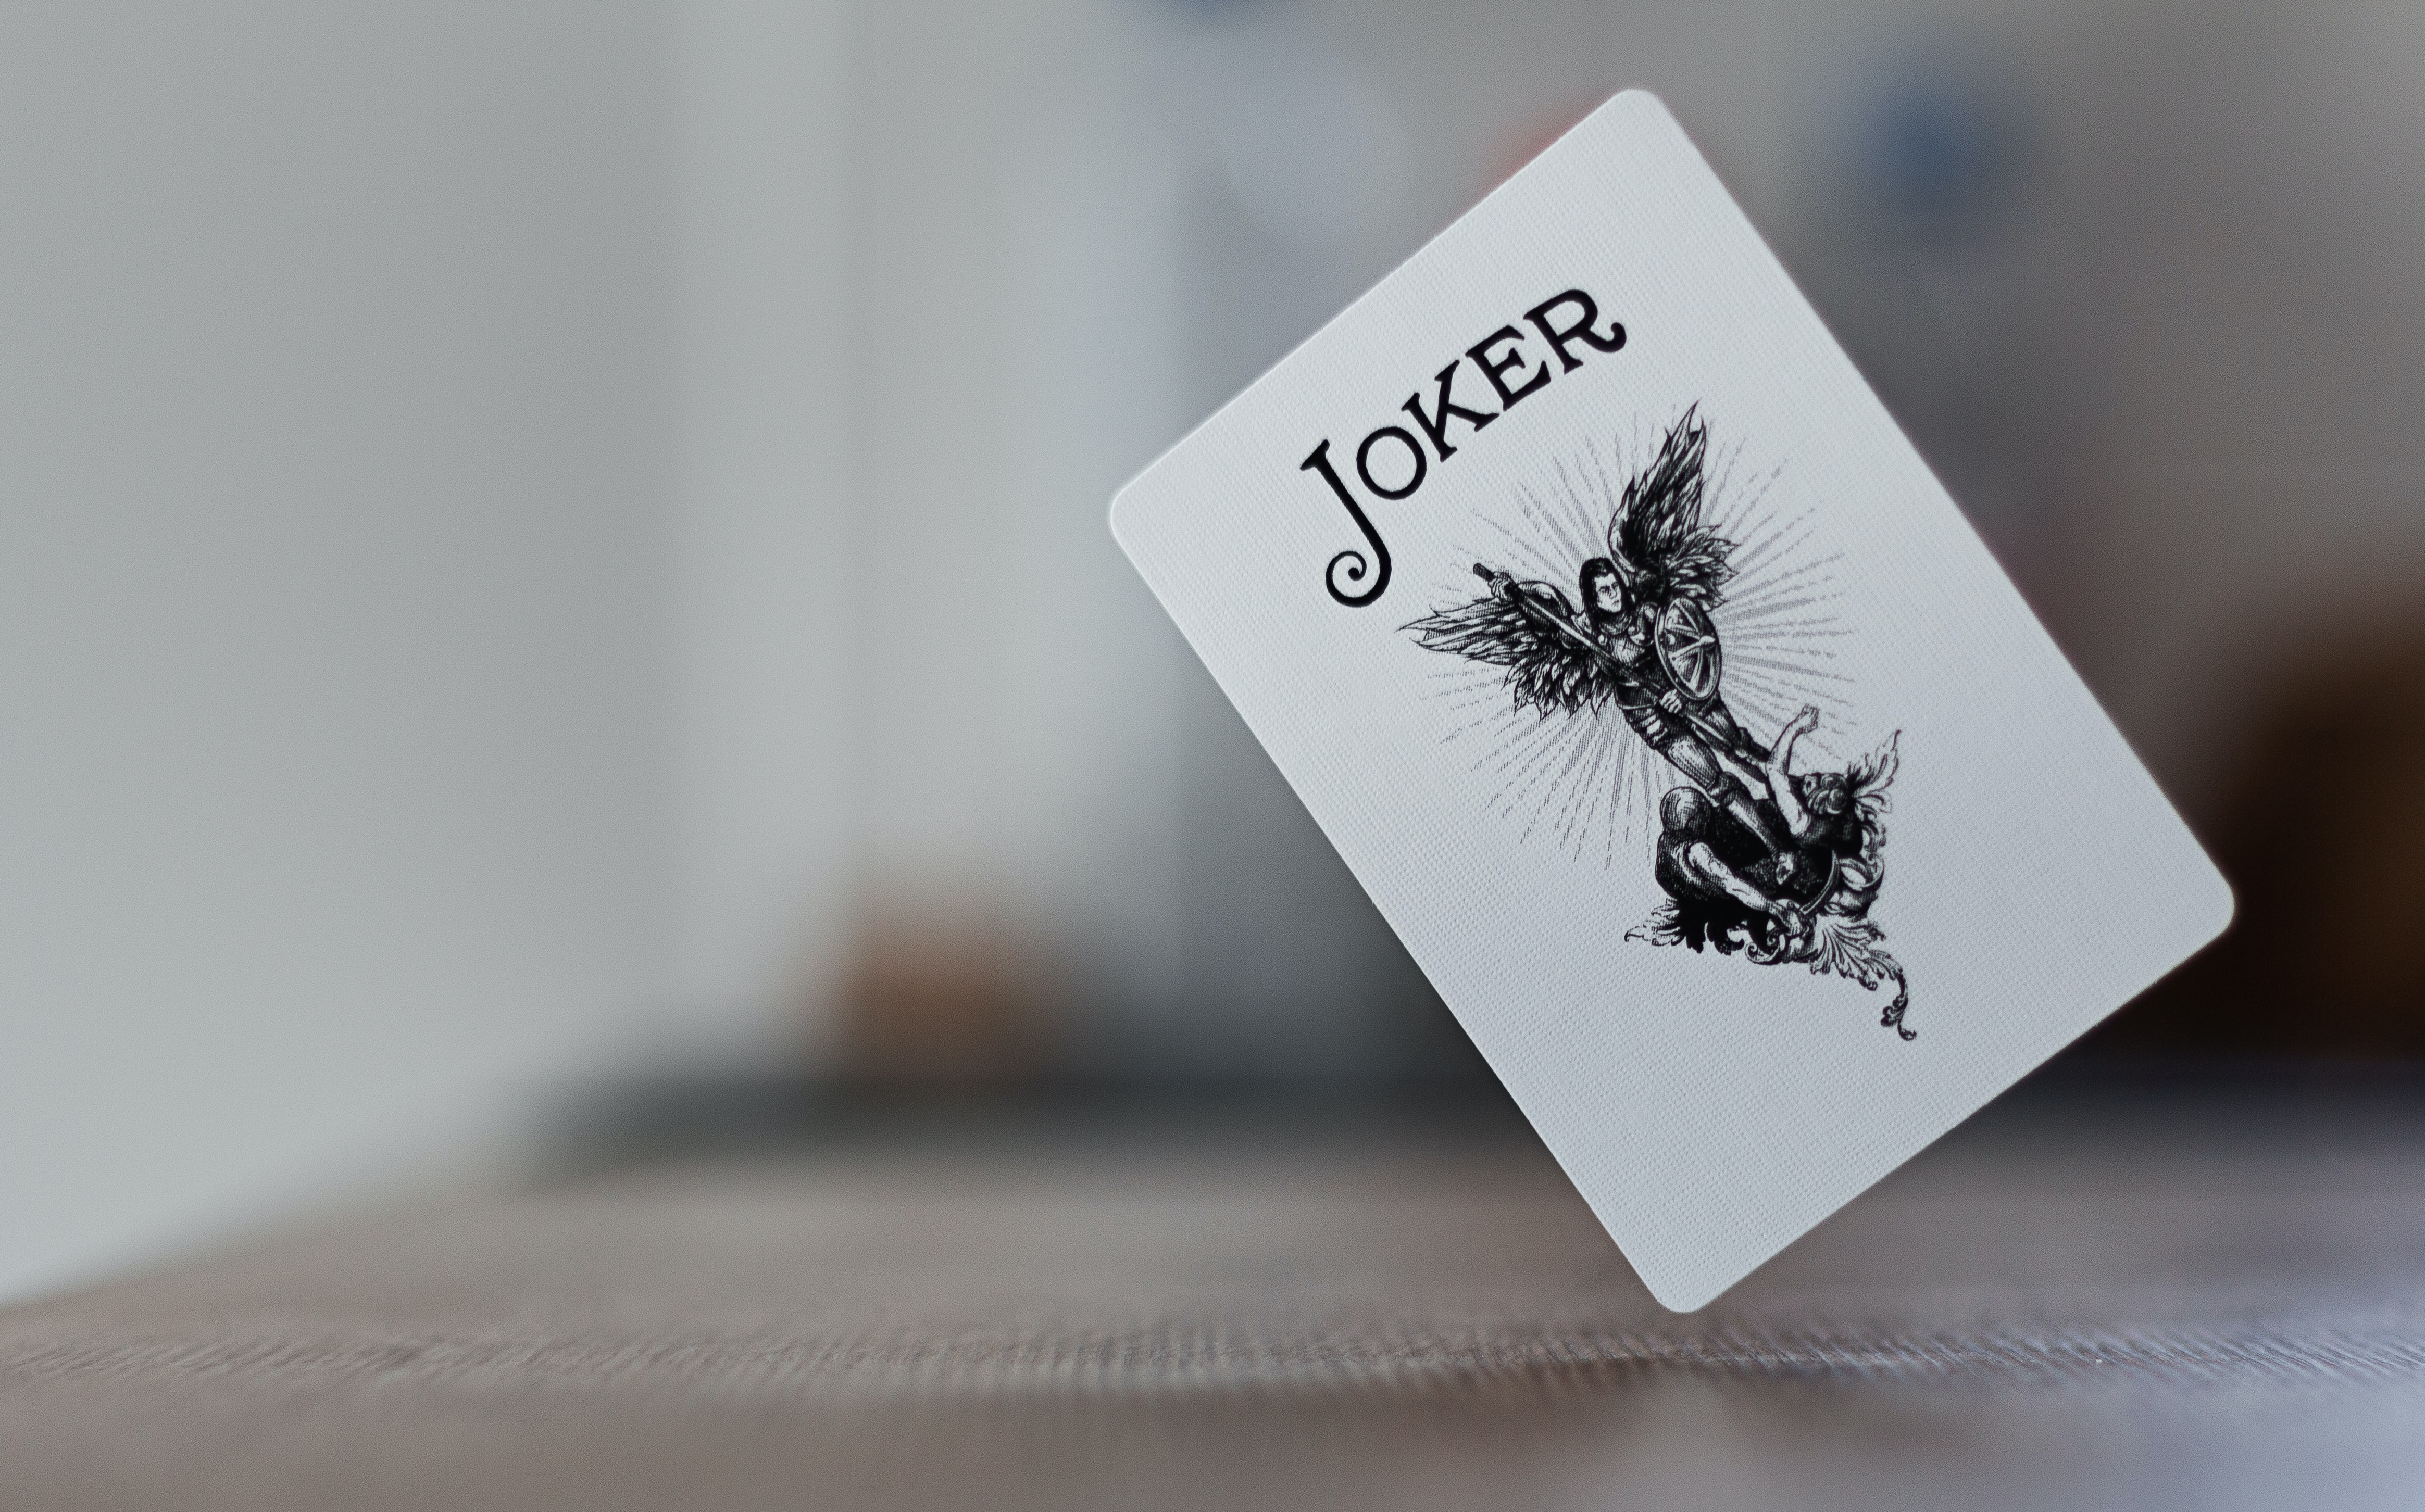 close-up photography of Joker card